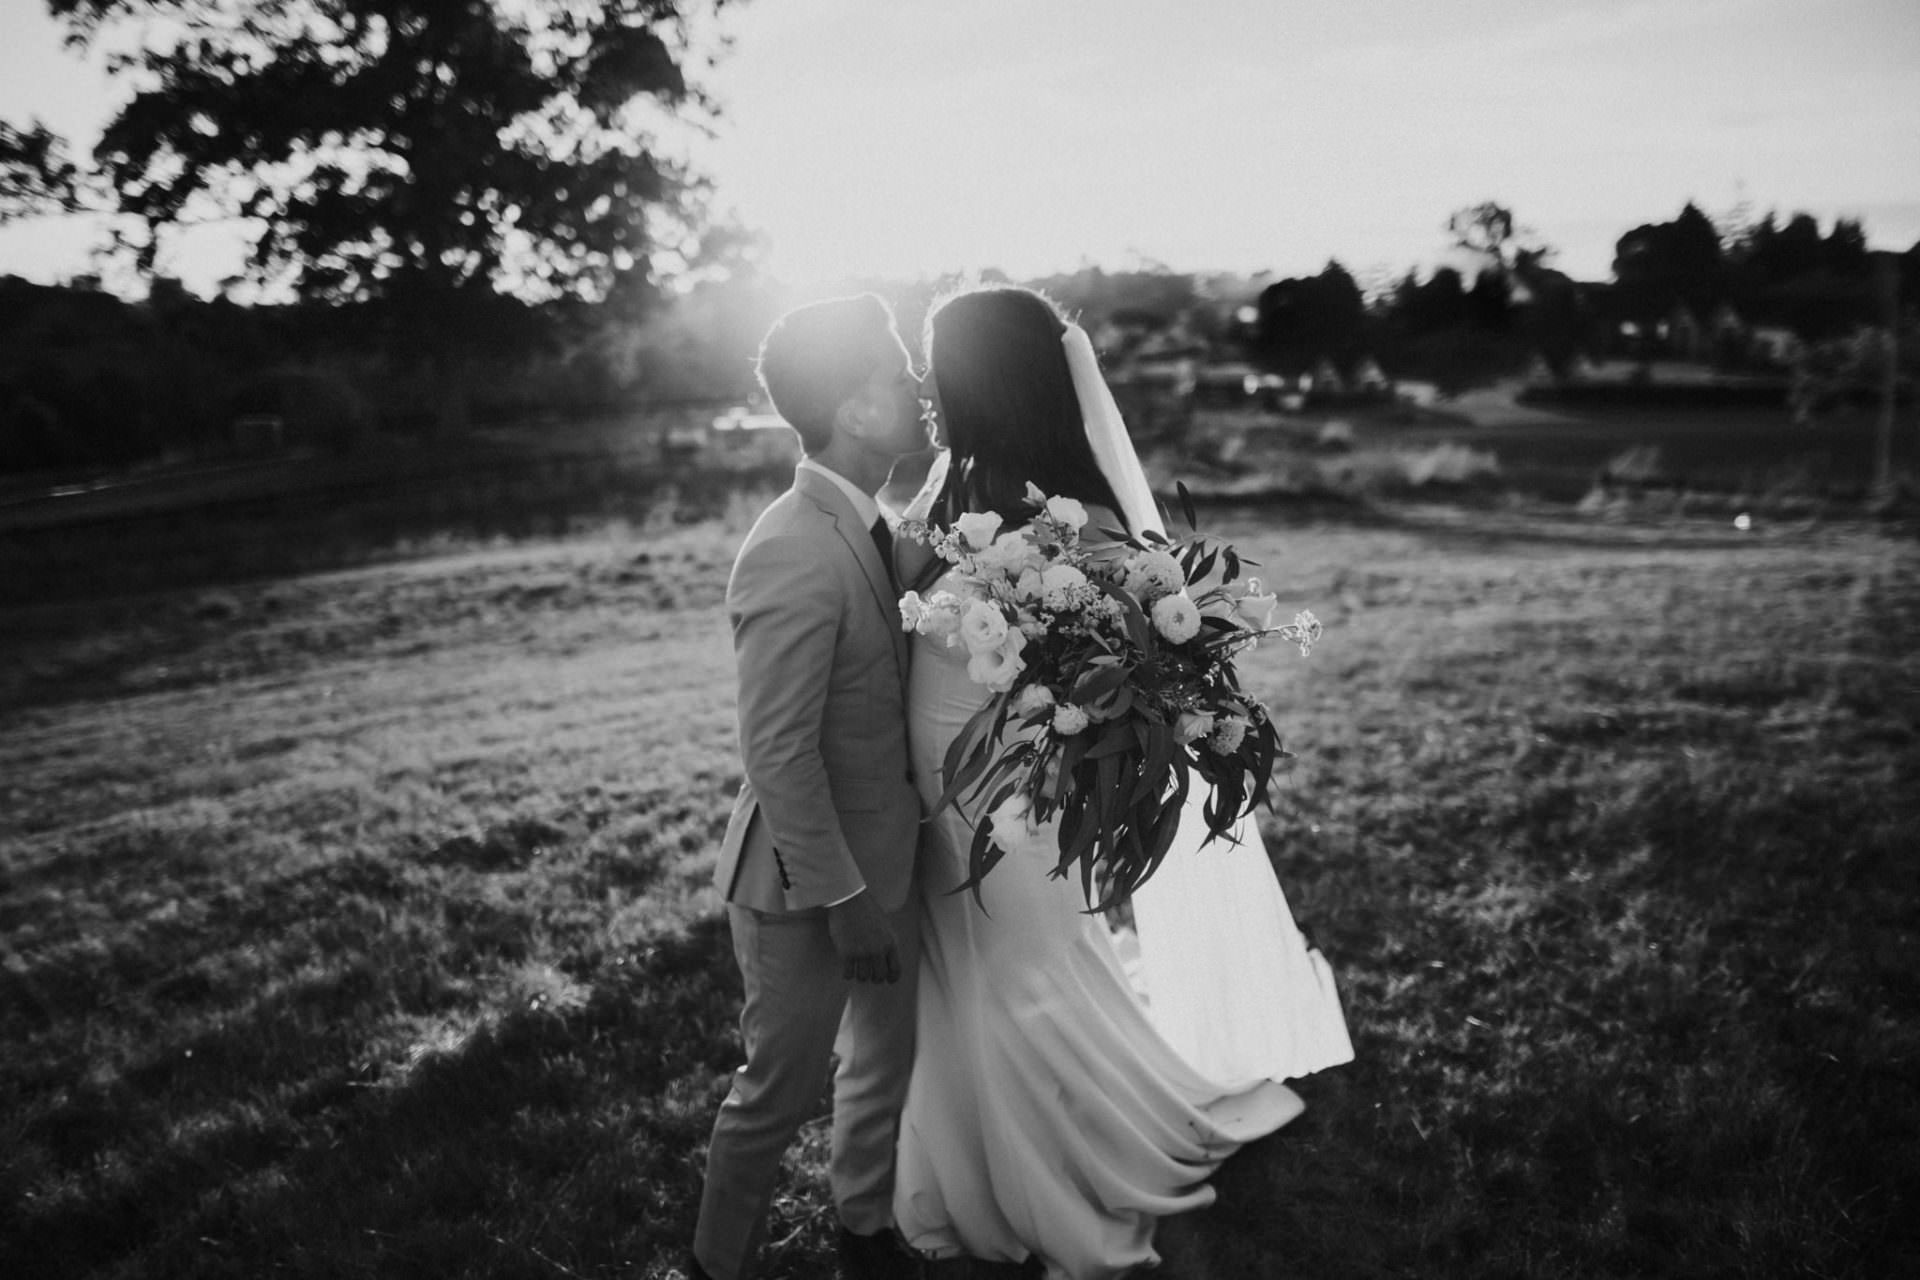 Black and white sunset wedding photograph